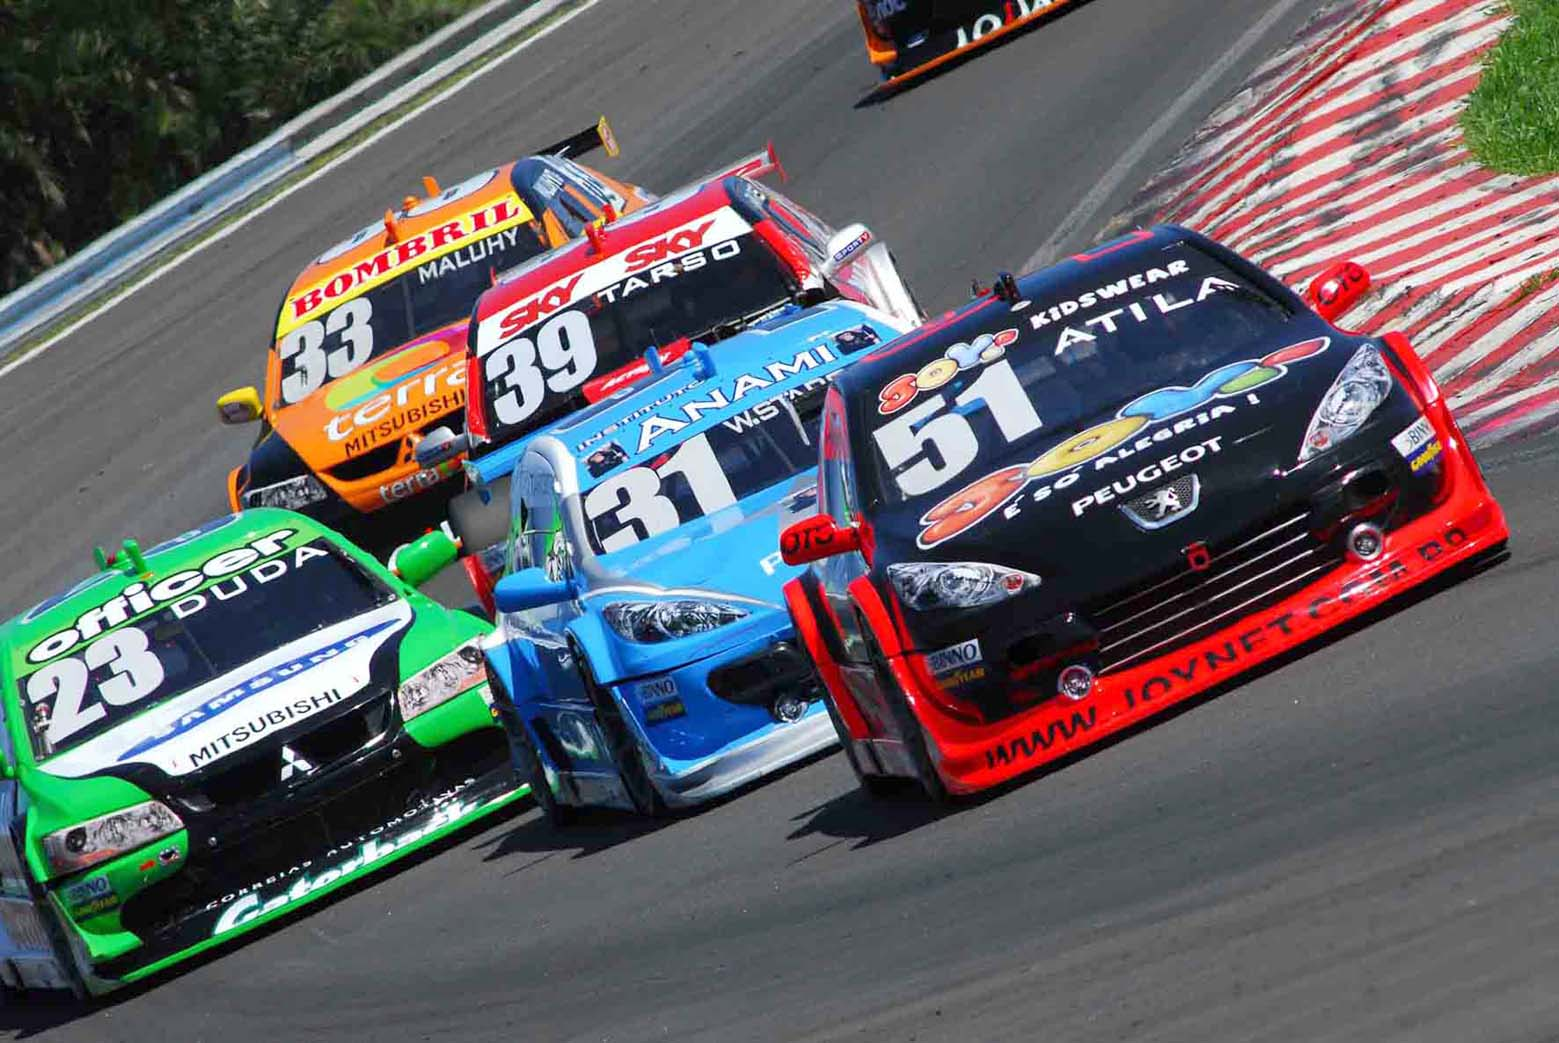 Stock car images